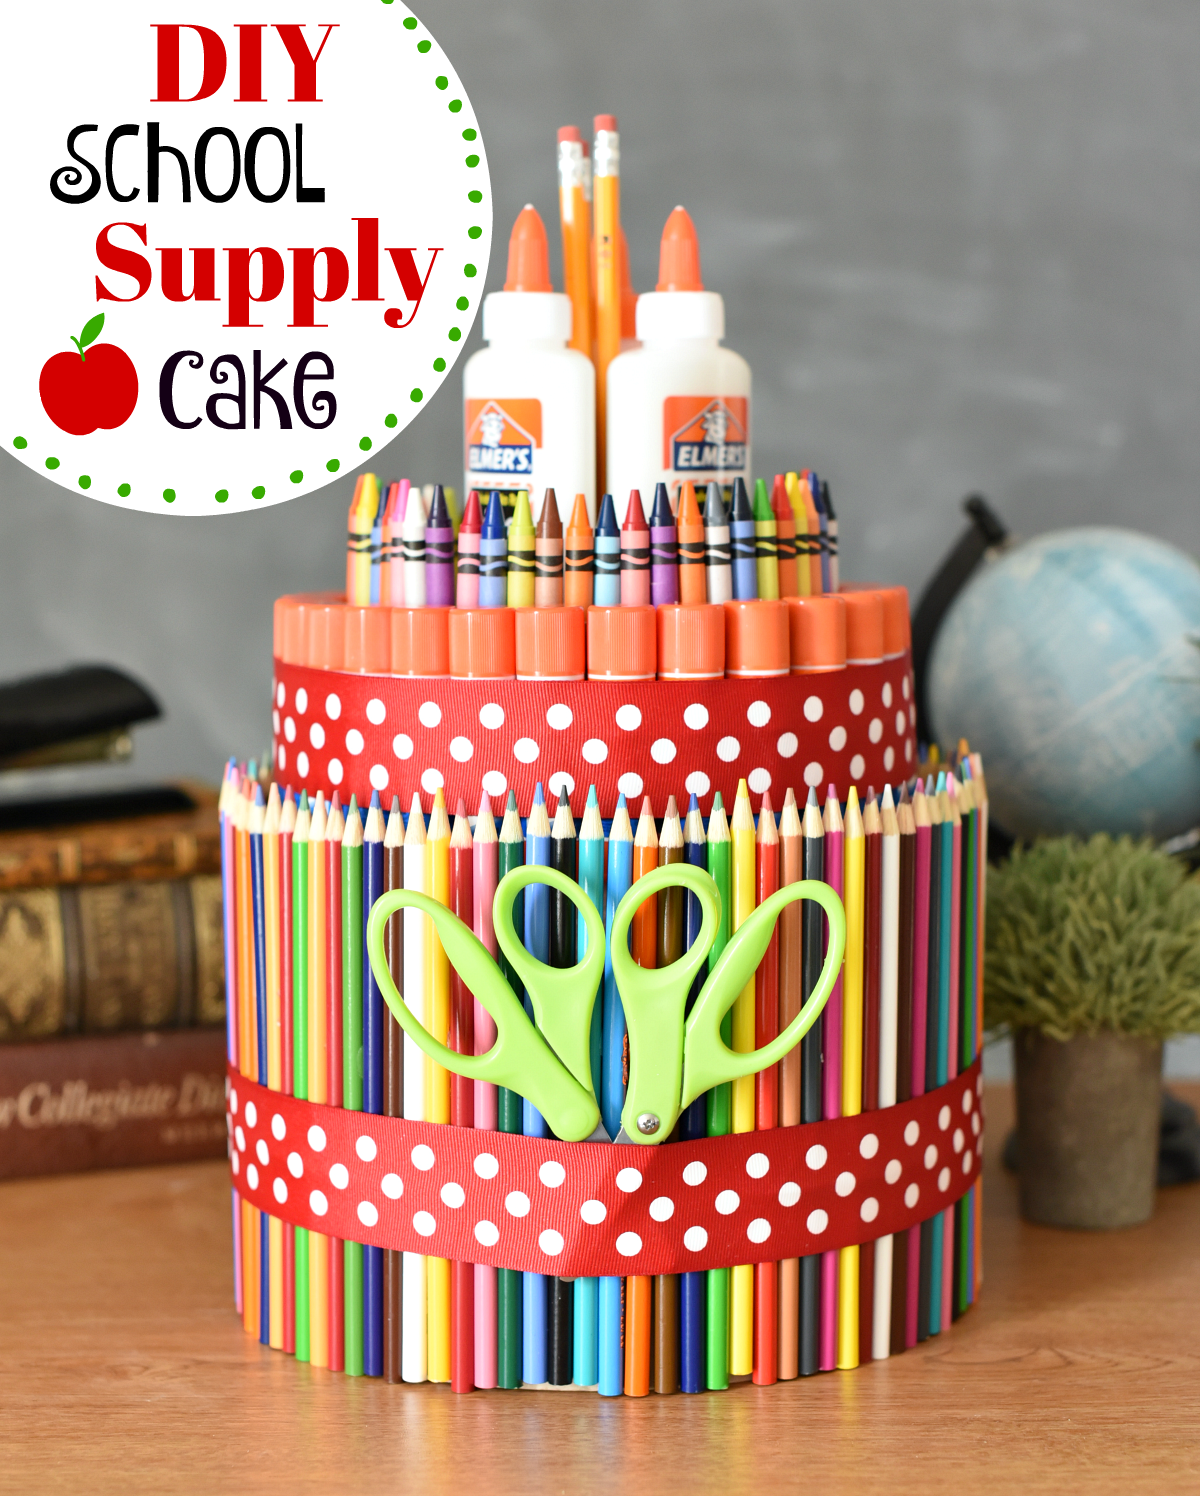 School supply cake! Fun way to start the school year off right. Simple and fun to make, this school supply cake it the perfect back to school gift idea! #schoolsupplies #backtoschool #fungifts